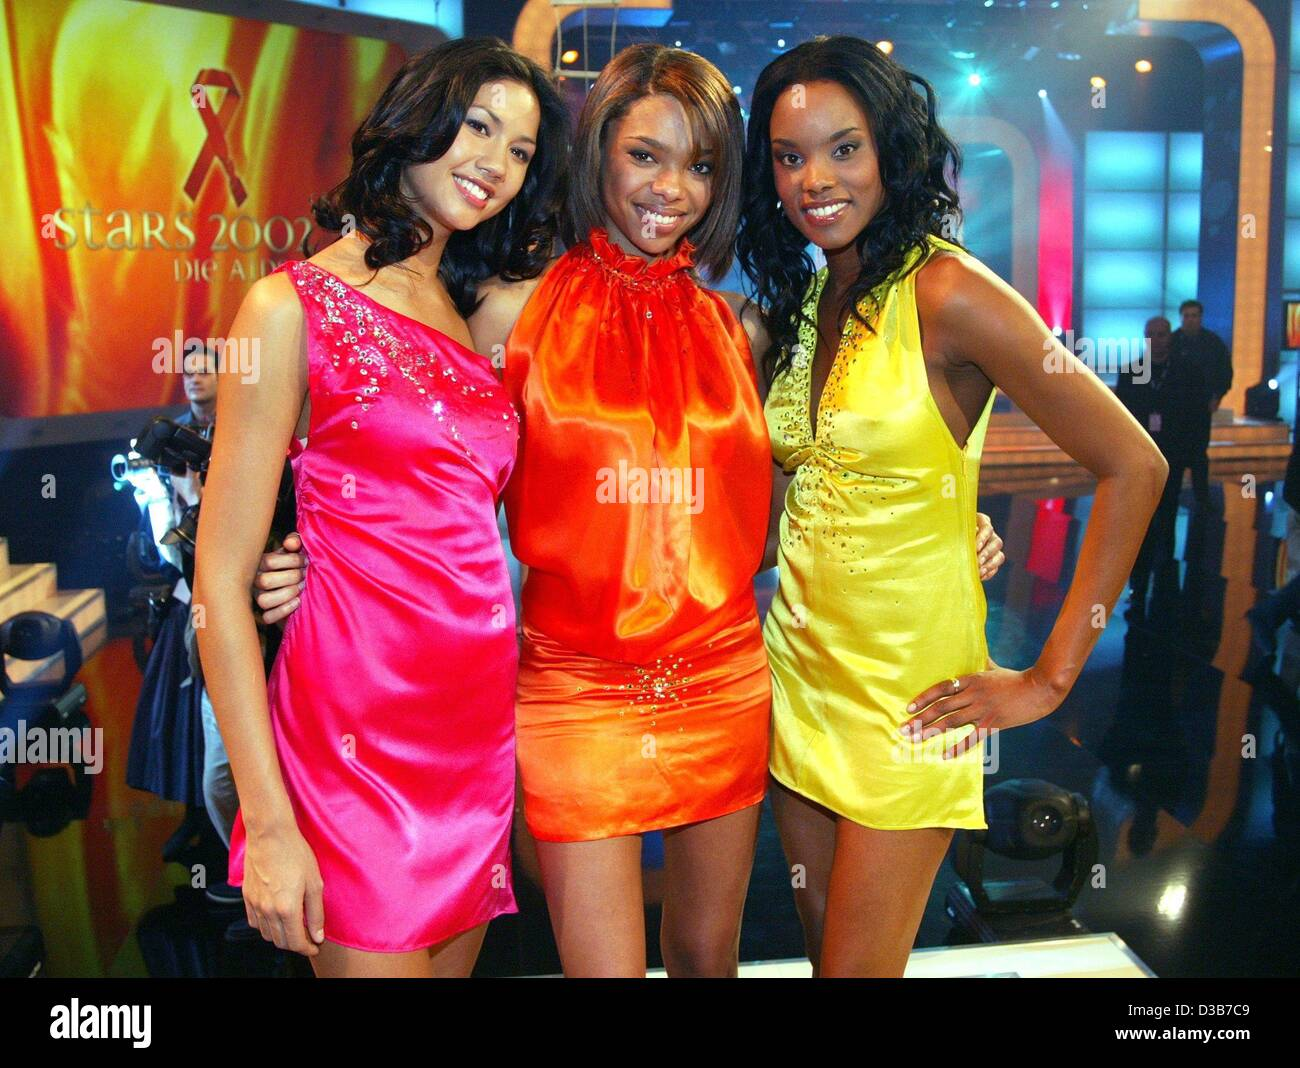 (dpa) - The members of the girlgroup Heaven Sent pose after a dress rehearsal of the Aids gala 'Stars 2002' - Stock Image